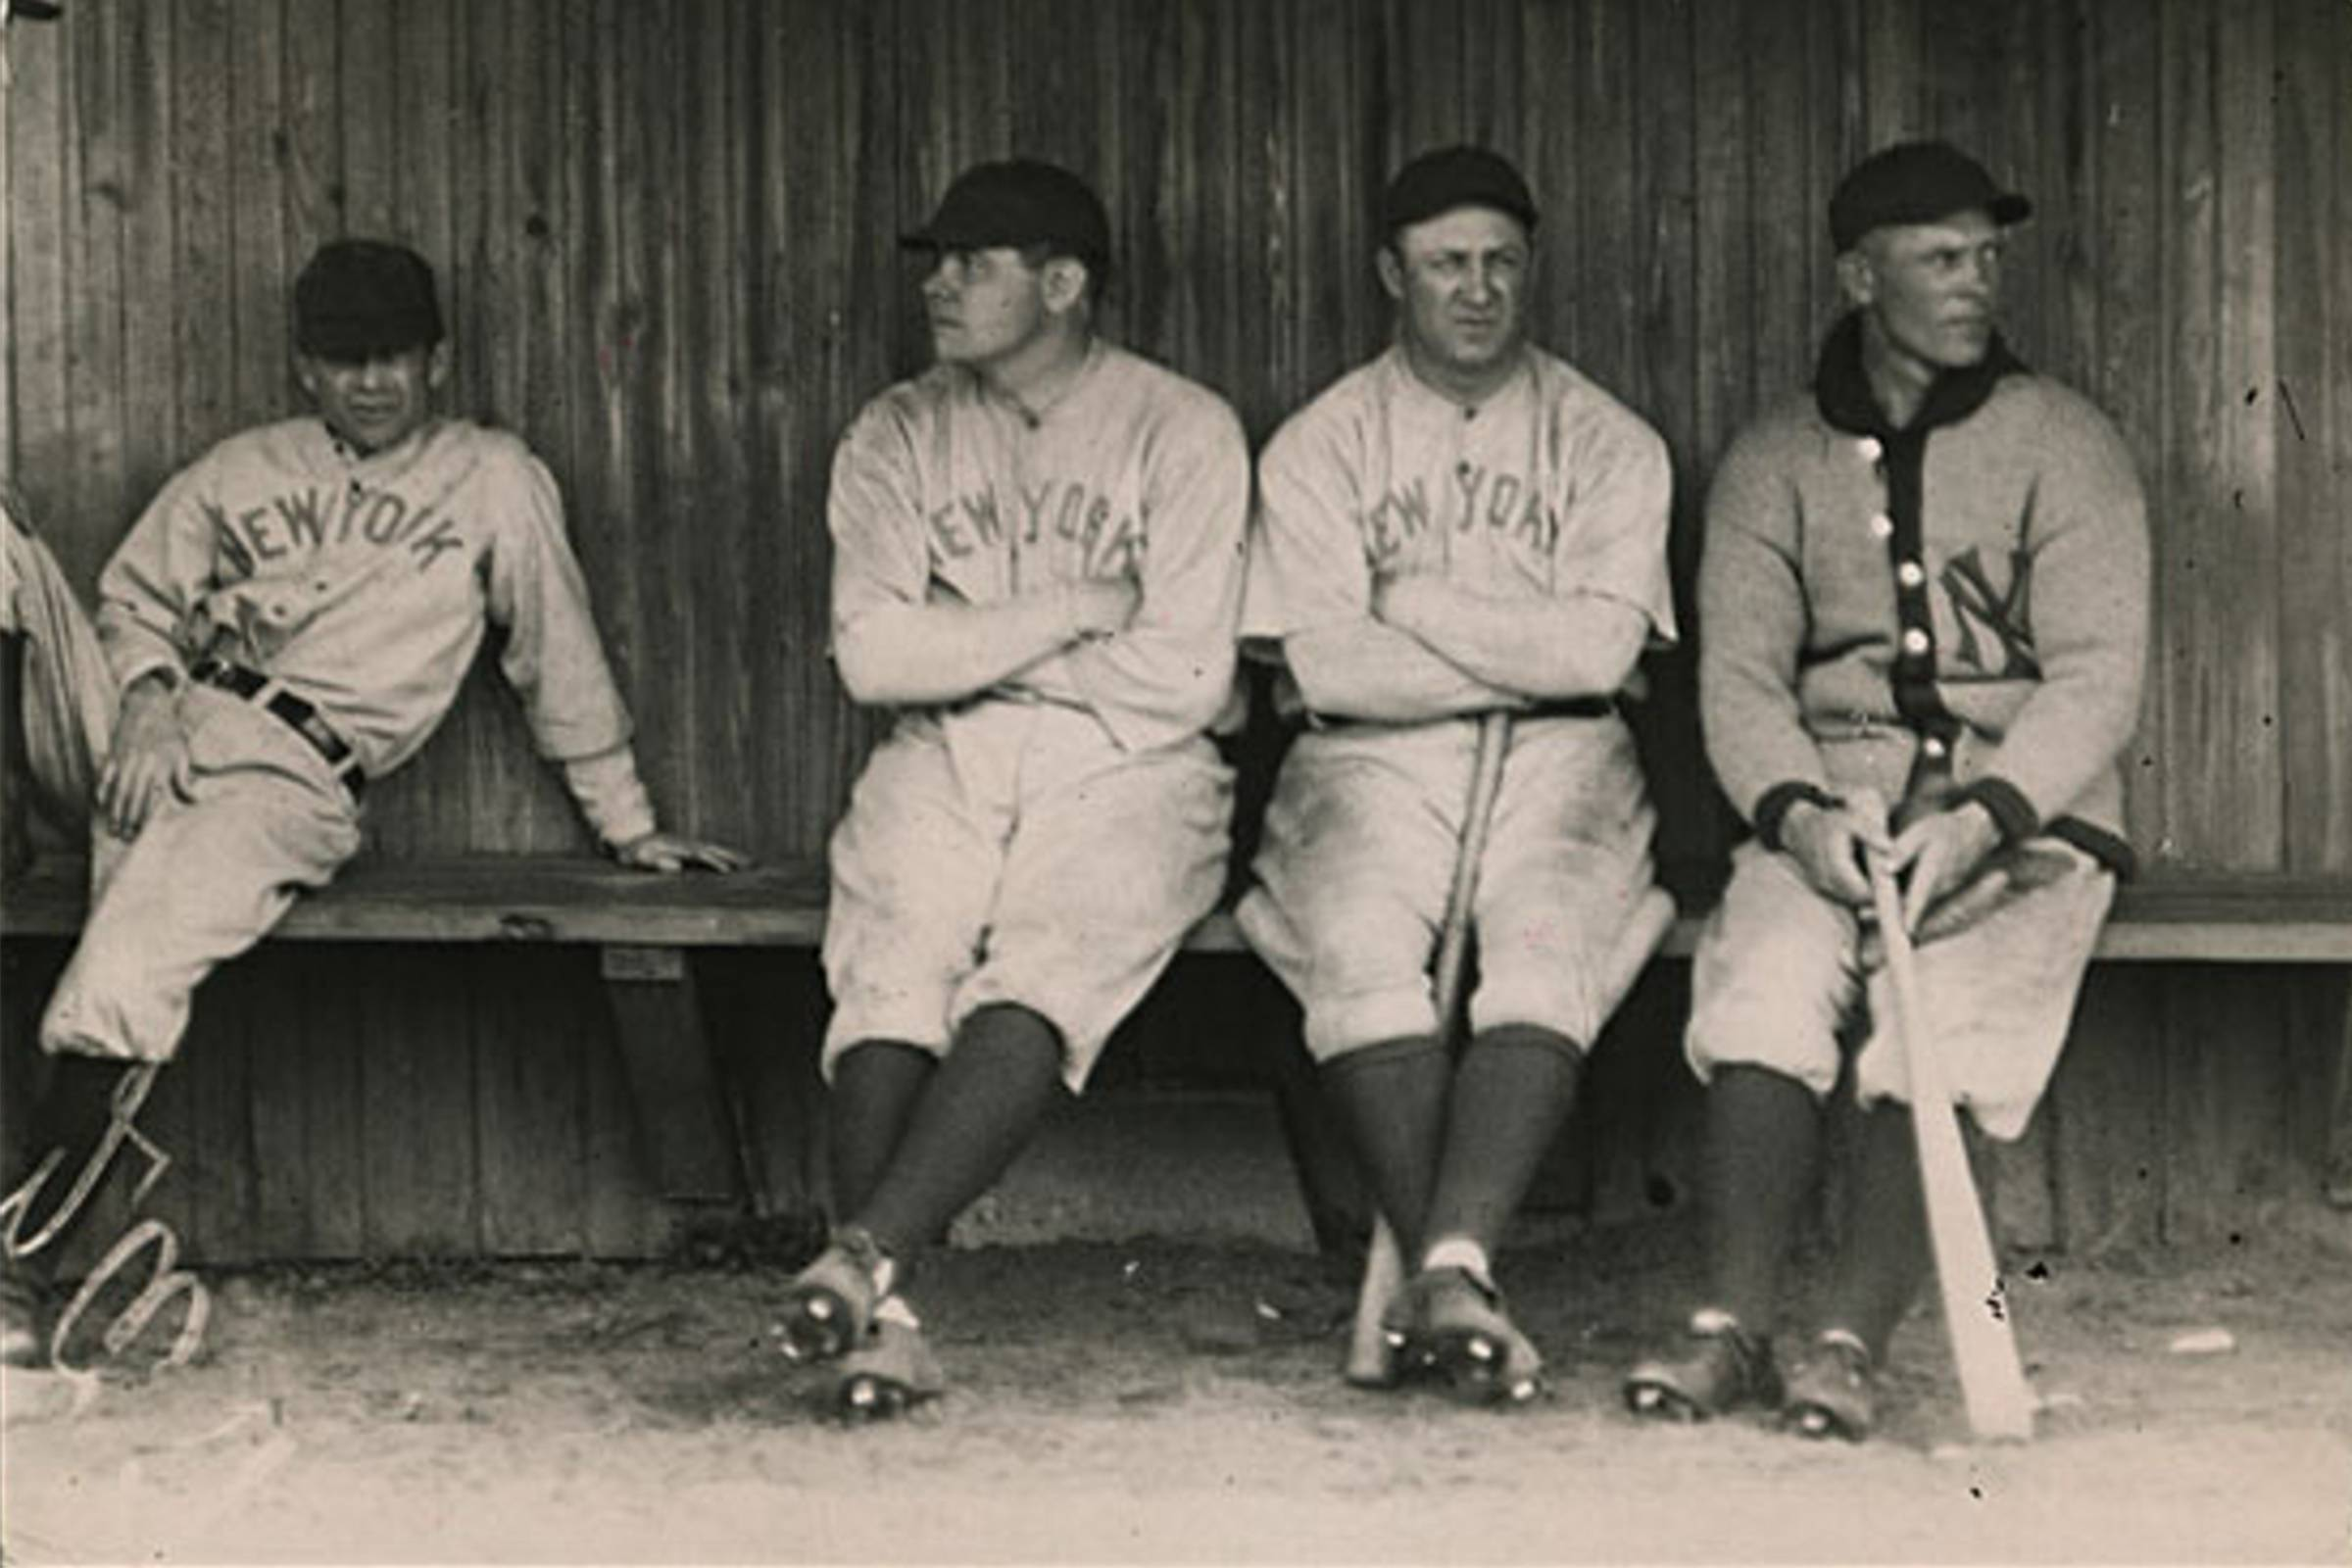 The 1920s New York Yankees uniforms featuring pinstripes, introduced to make Babe Ruth (far left) appear more slim